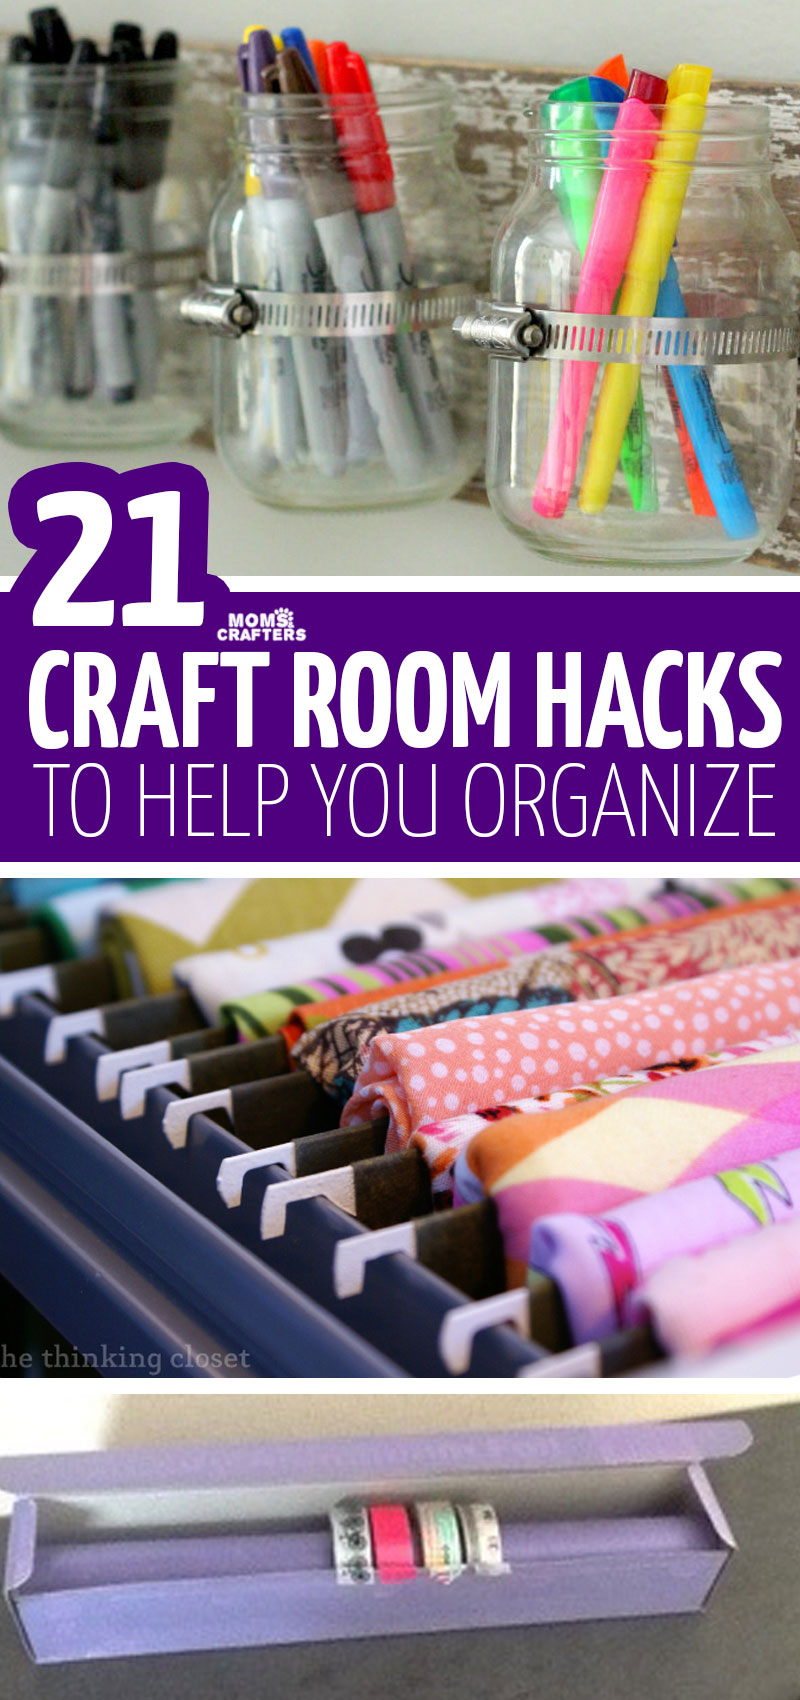 Clickfor craft room organization tips, hacks, and solutions that you can DIY! These cool scraft supplies storage ideas are perfect for organizing your craft room. #craftroom #organization #crafts